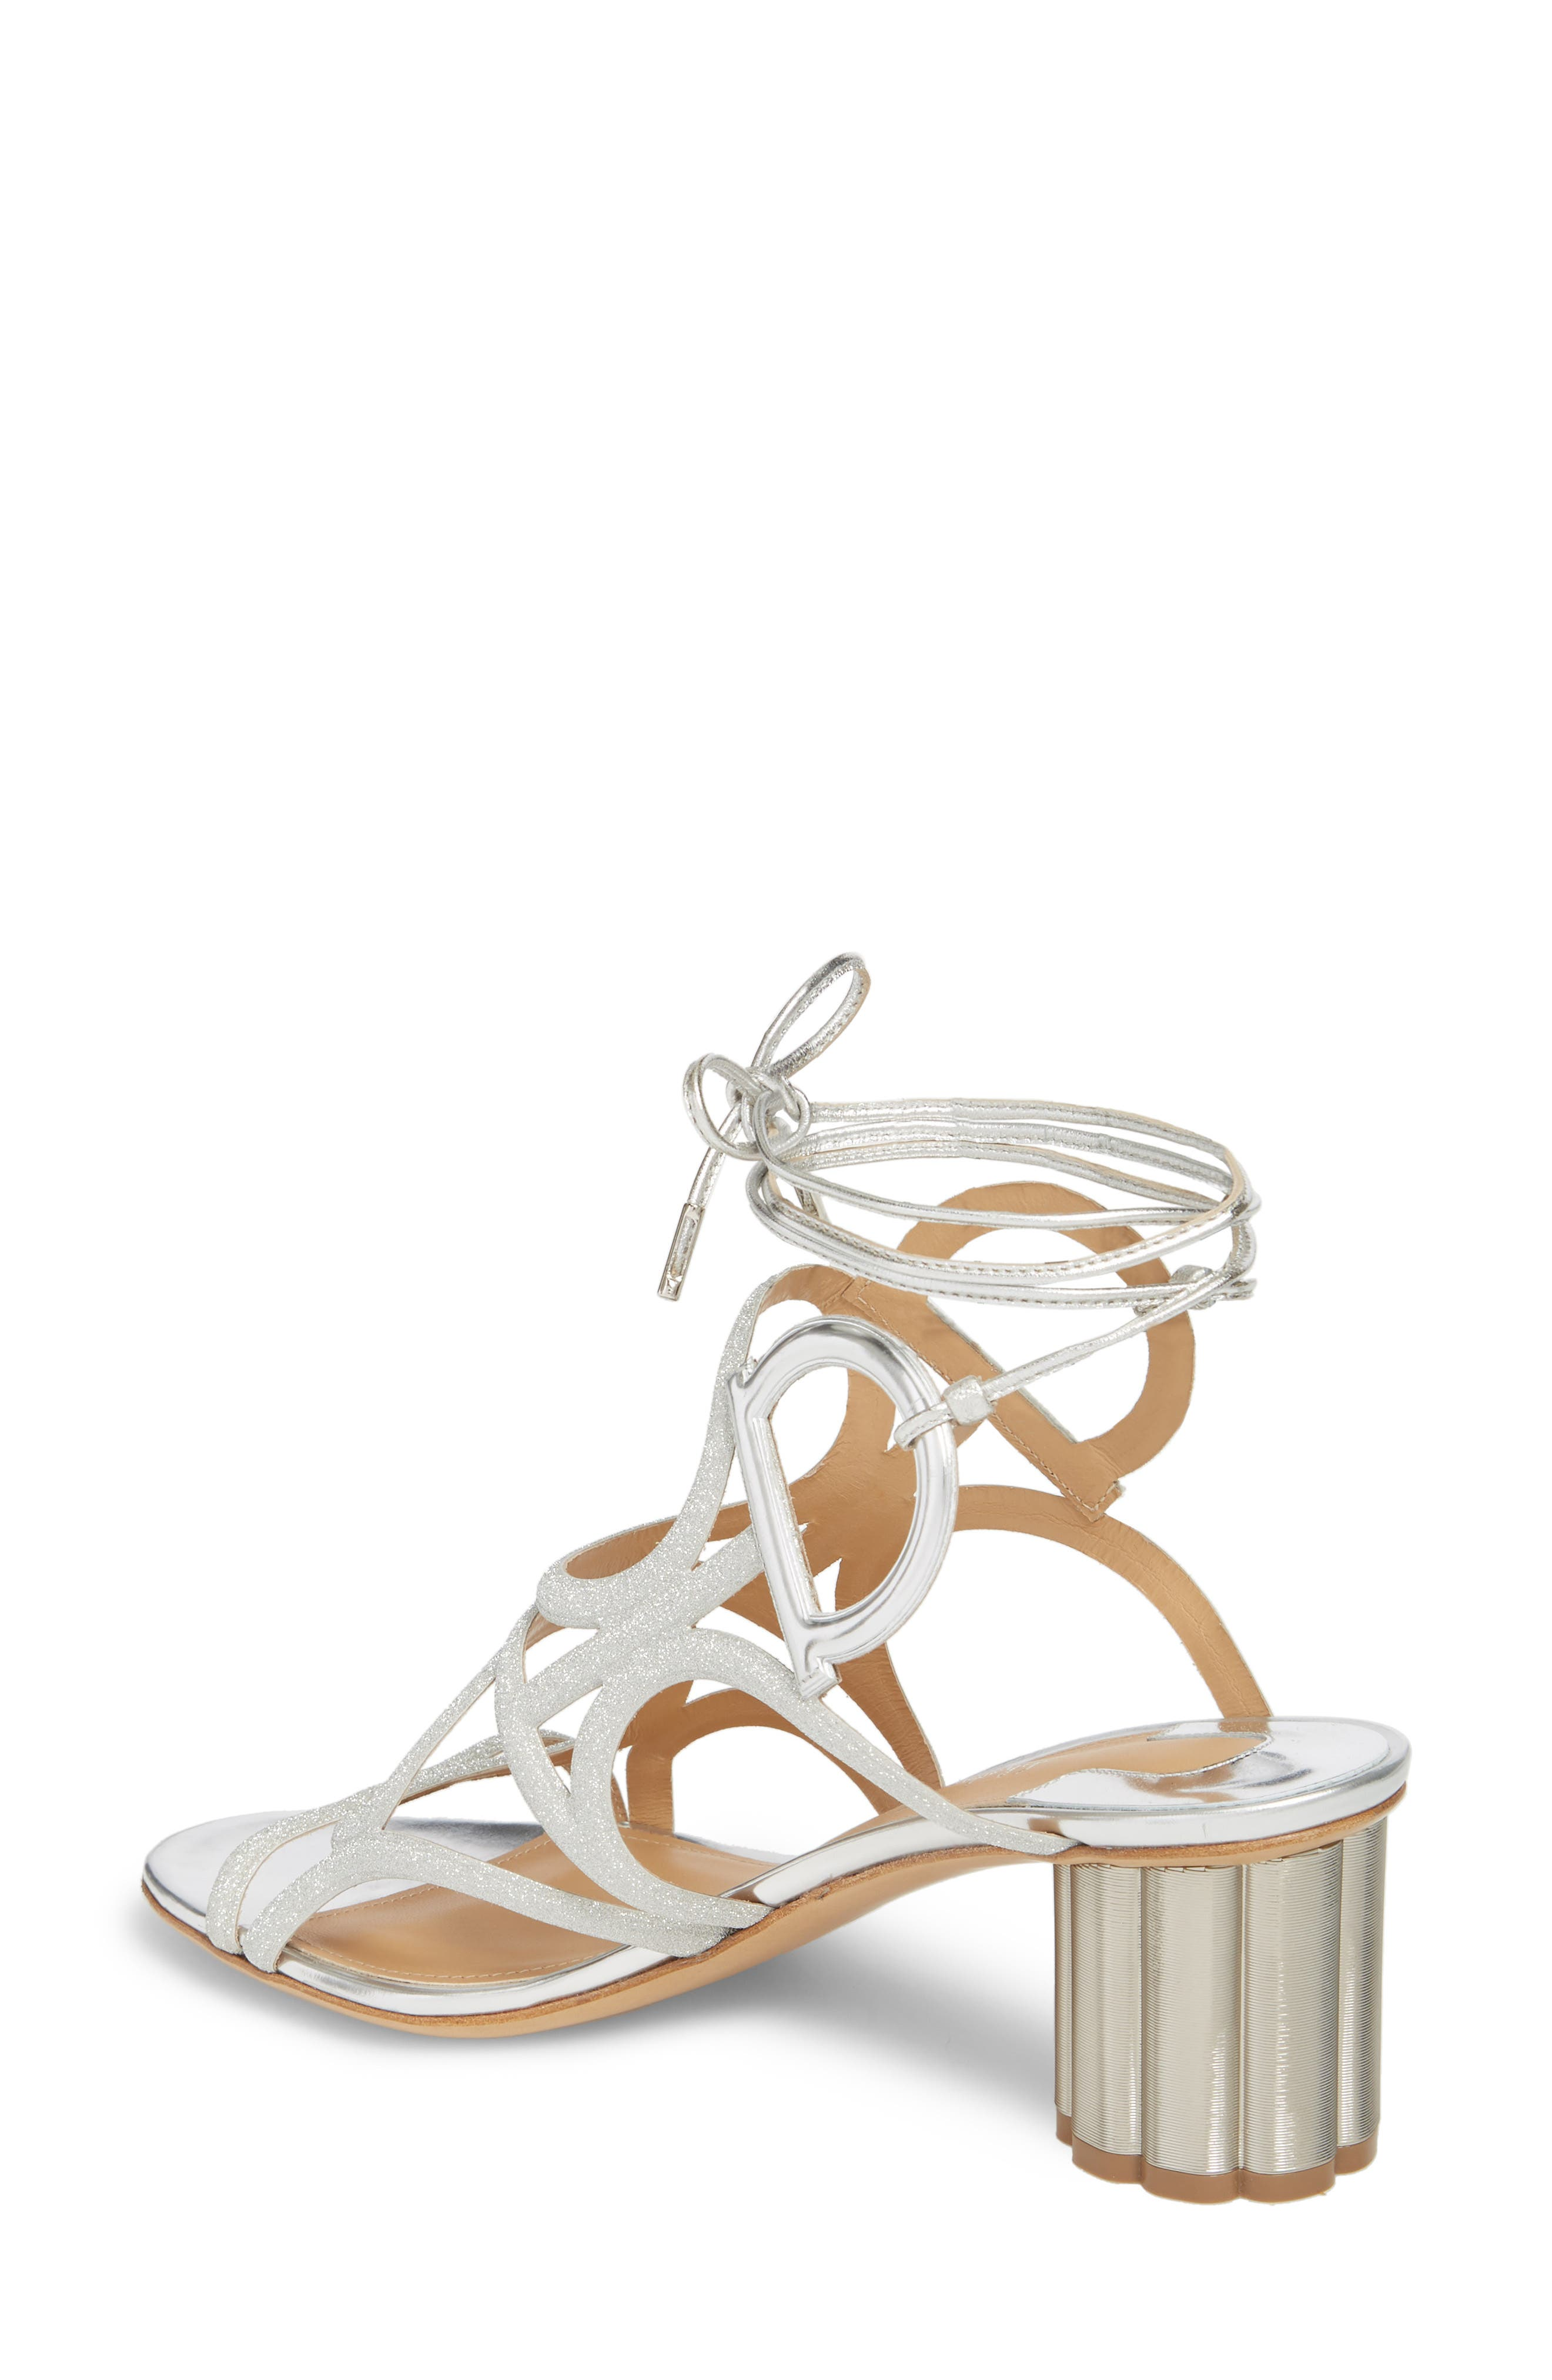 Vinci Lace-Up Block Heel Sandal,                             Alternate thumbnail 2, color,                             SILVER